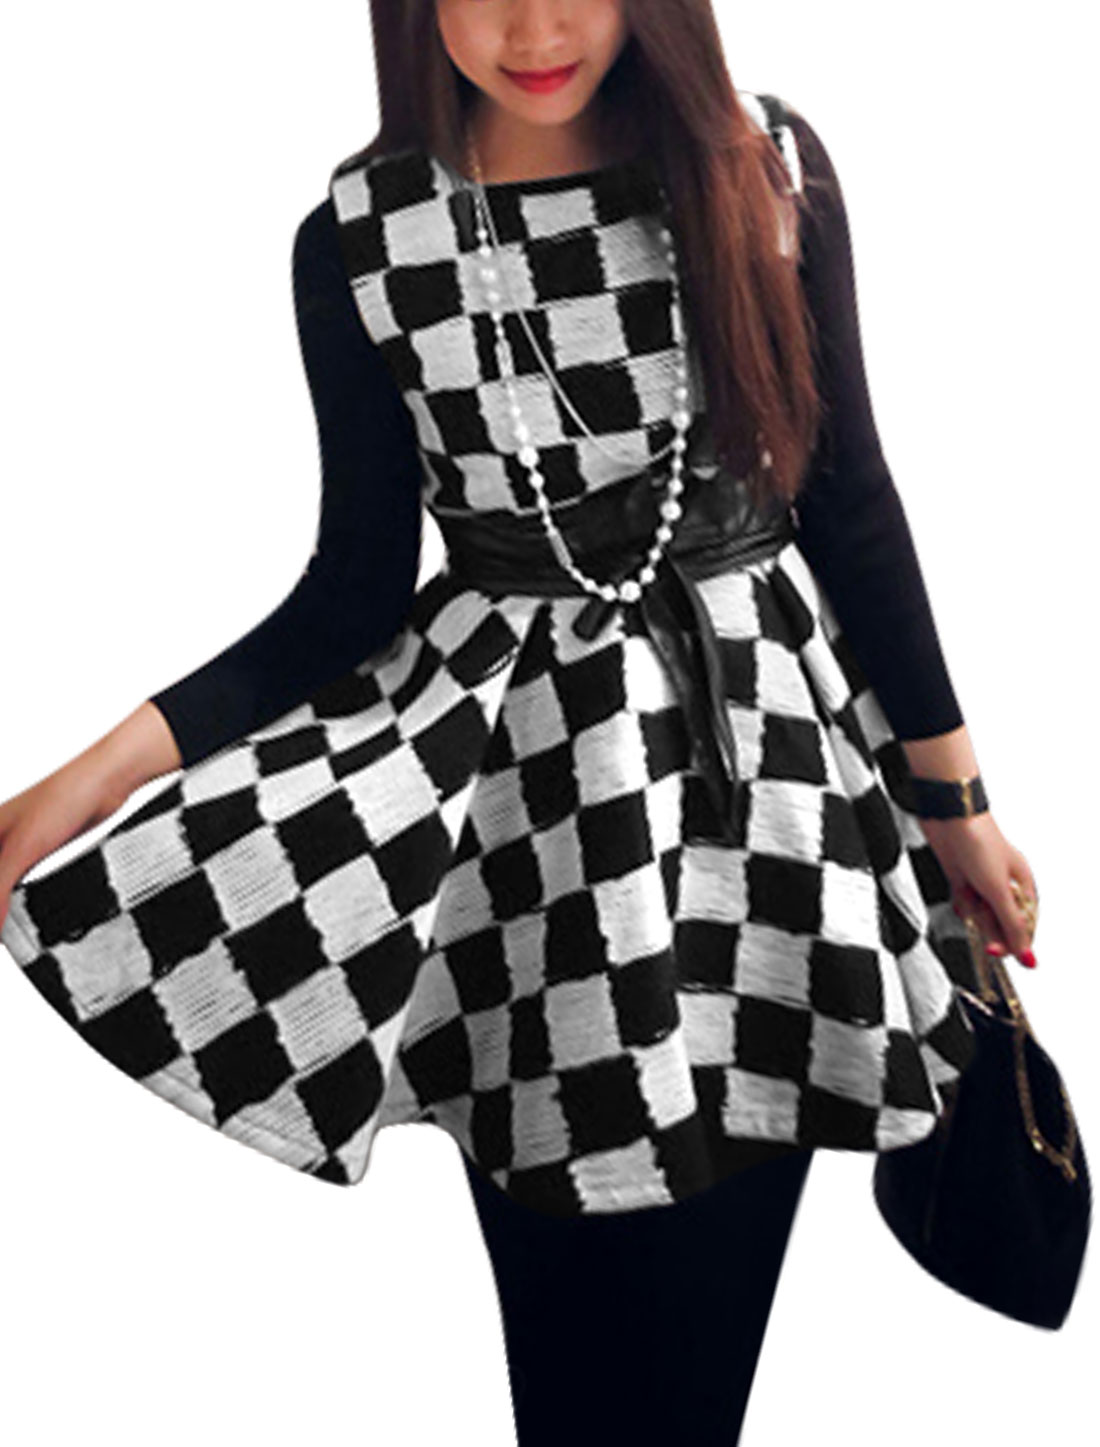 Women Round Neck Sleeveless Ruffled Design Skater Dress Black White XS